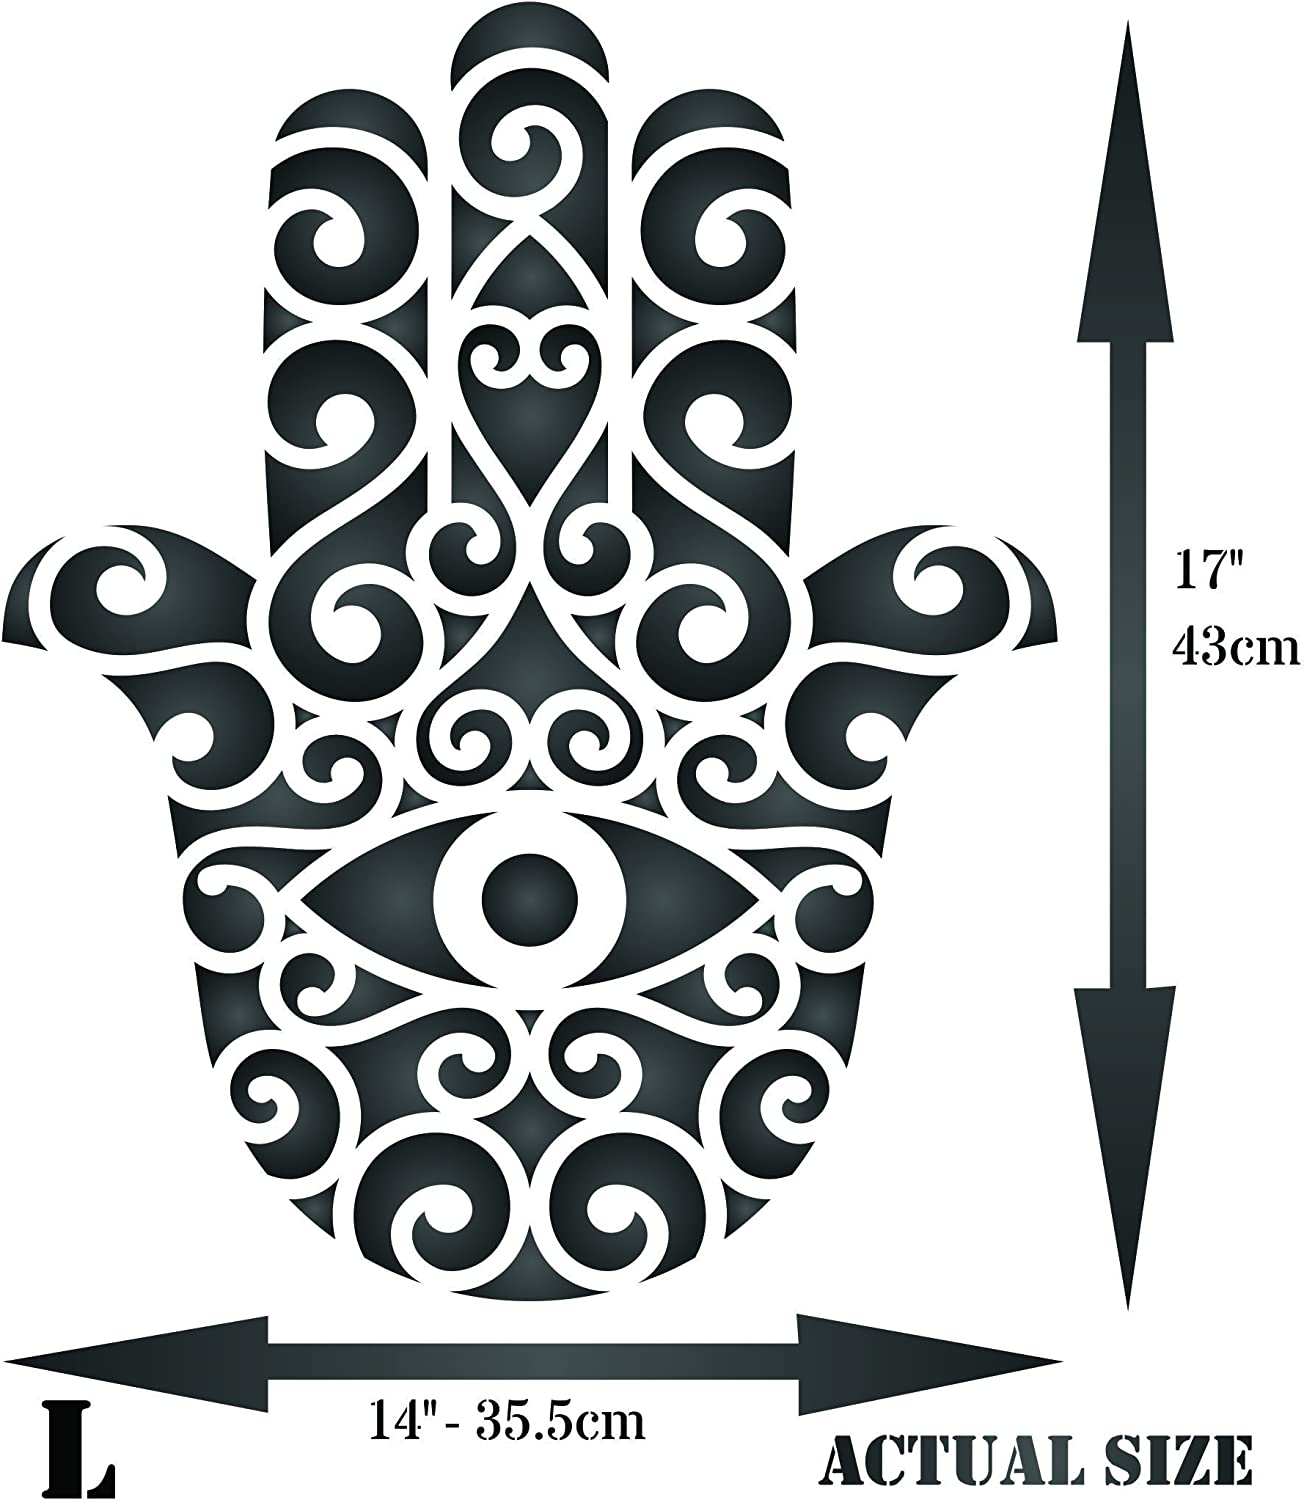 DIY Mandala Hamsa Stencil Template for Scrapbooking Painting on Wall Furniture Crafts A2 Size